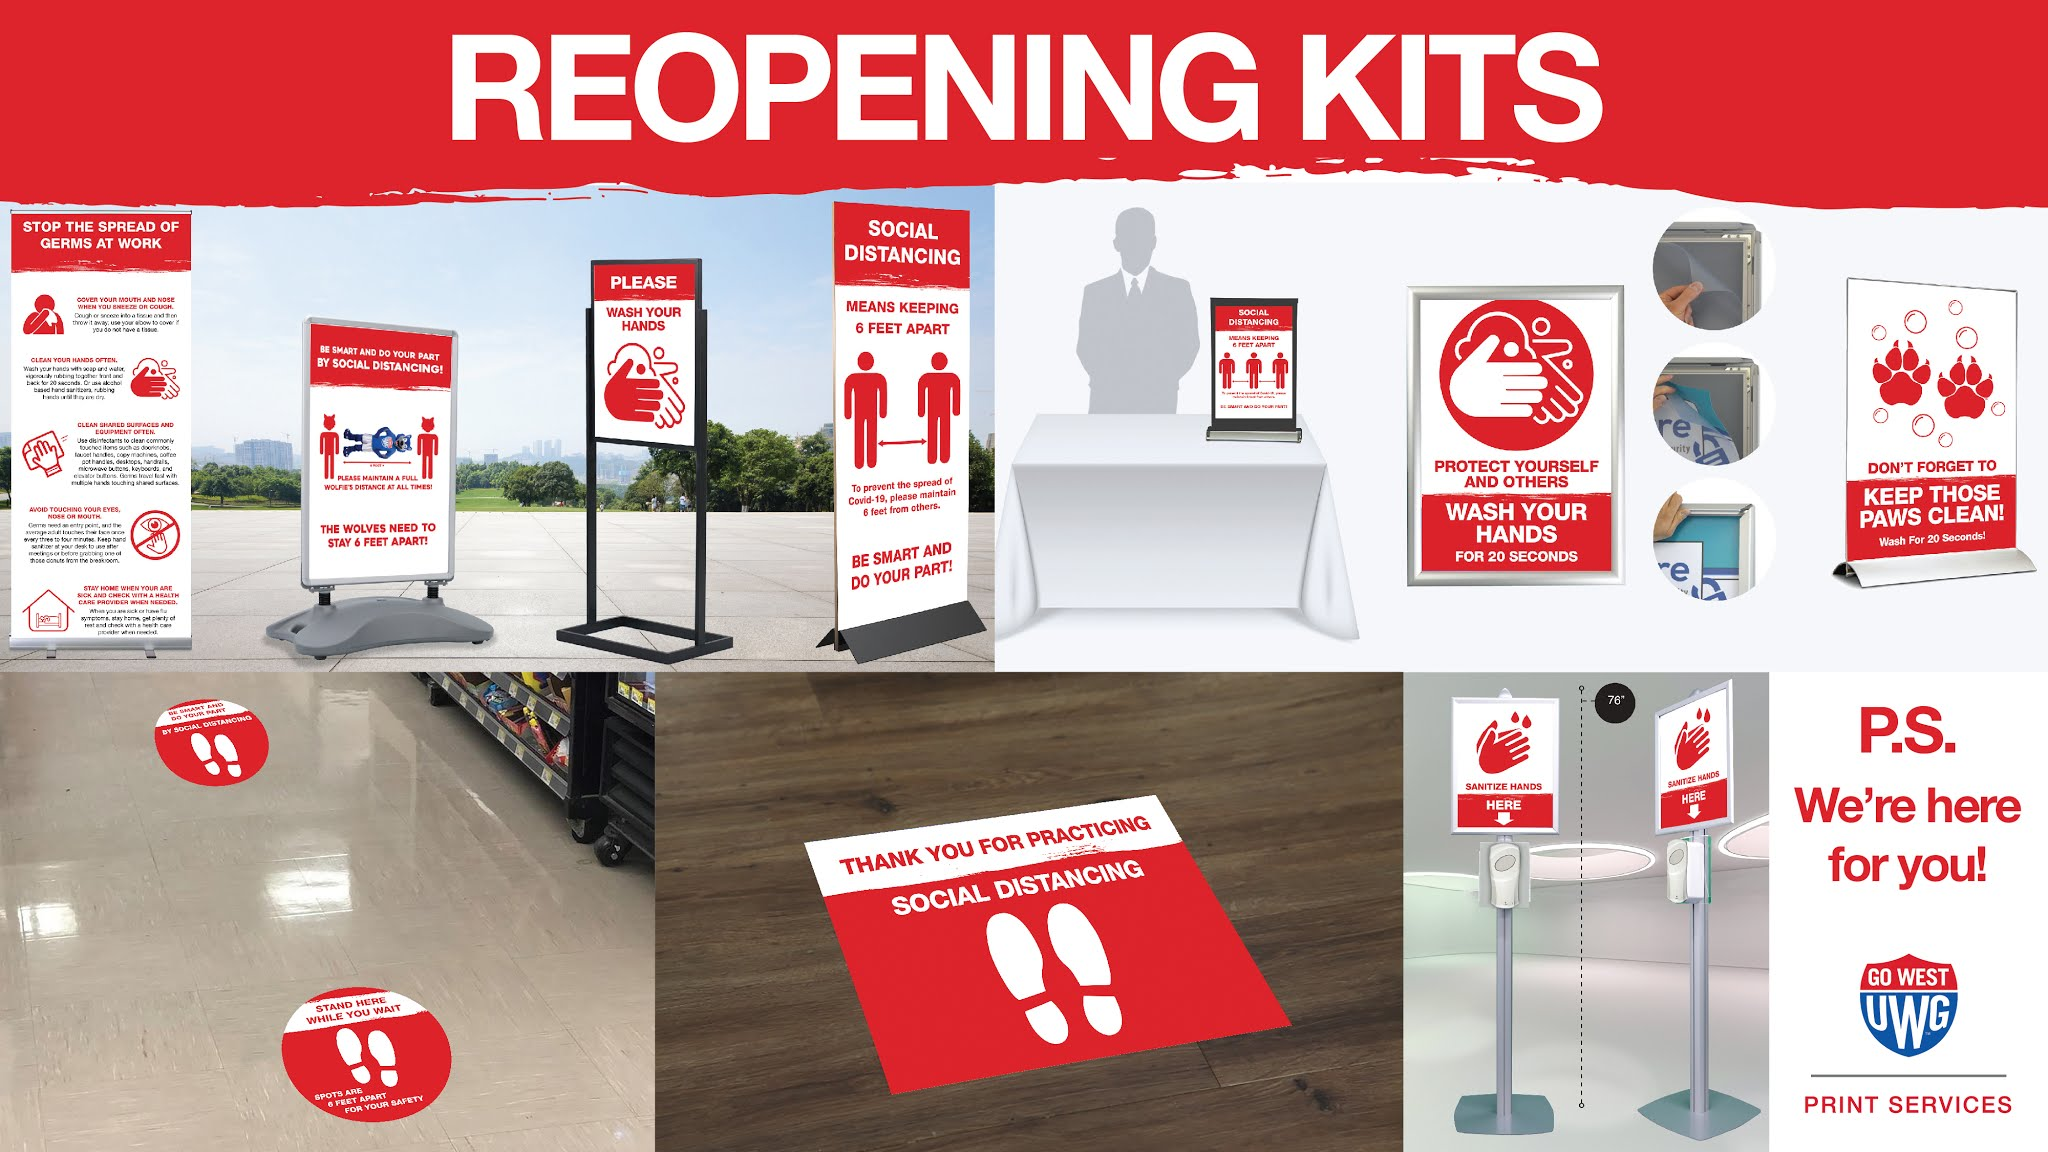 Reopening kit print item examples such as COVID information standing banners and social distancing floor markers.